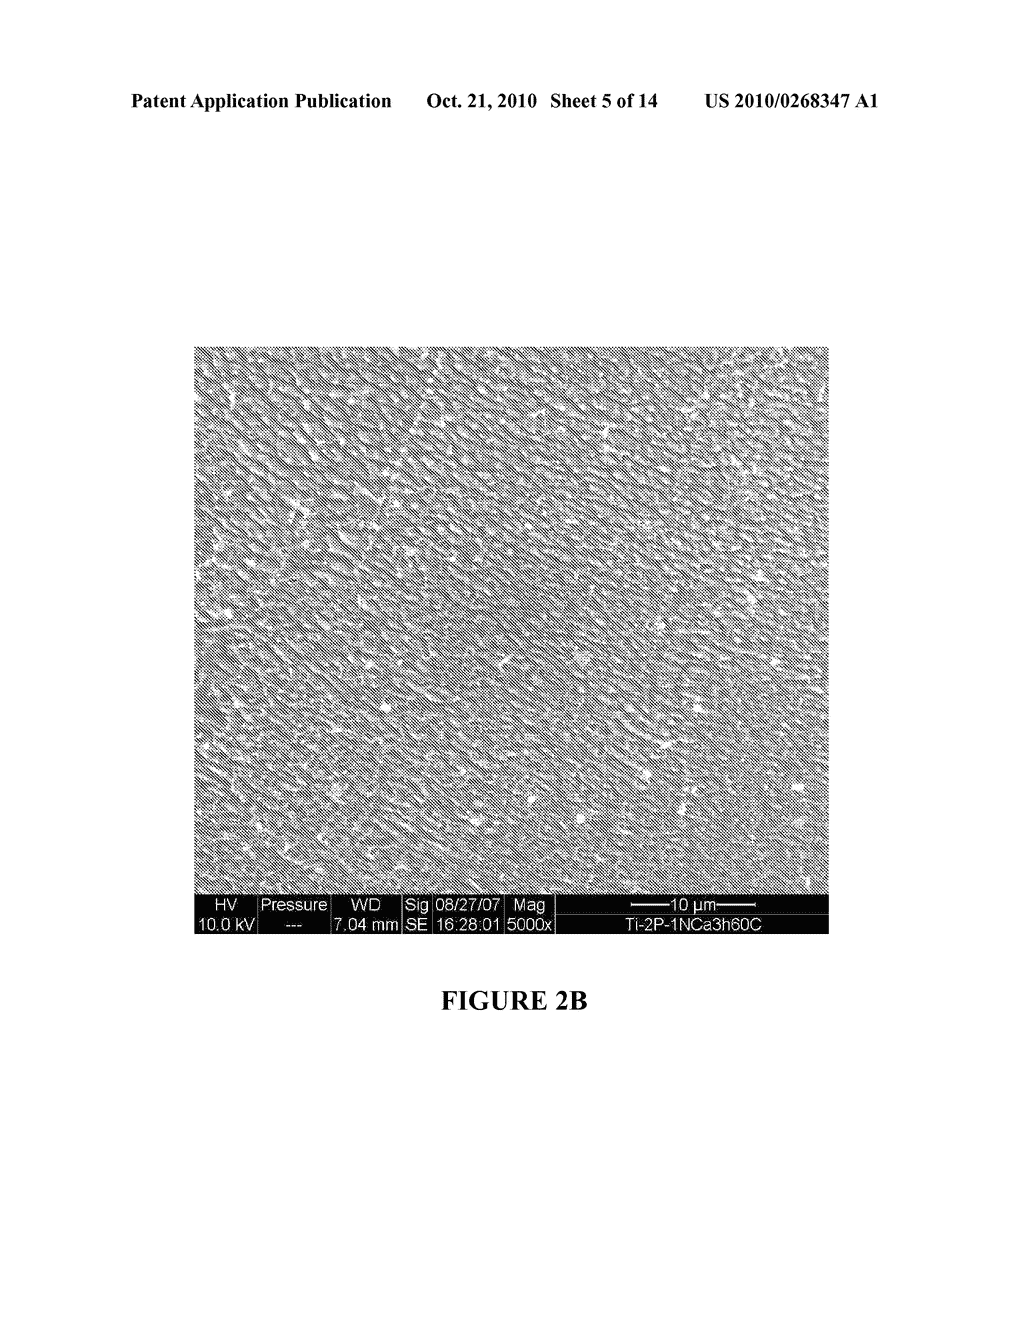 MICRO AND NANO SCALE SURFACE TEXTURED TITANIUM-CONTAINING ARTICLES AND METHODS OF PRODUCING SAME - diagram, schematic, and image 06